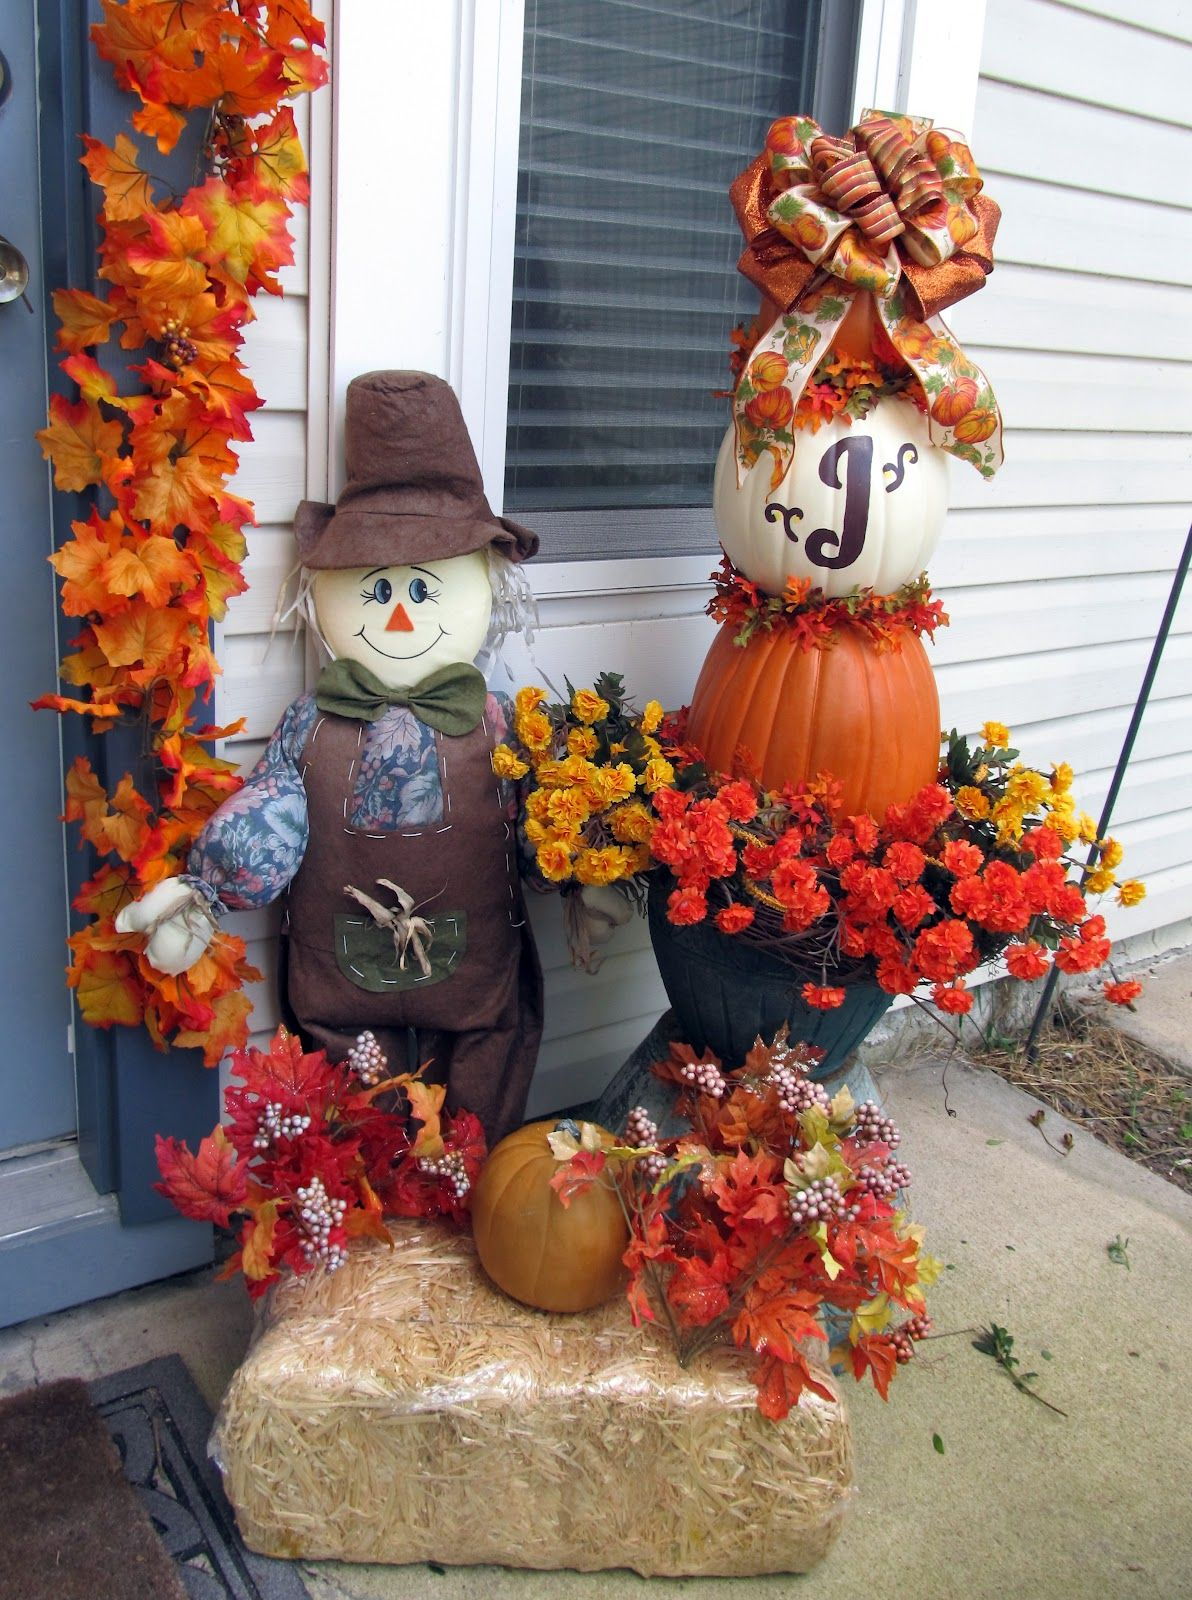 Pictures Of Hay Bale Decorations With Scarecrows Pulled Out My Other Decorations And The